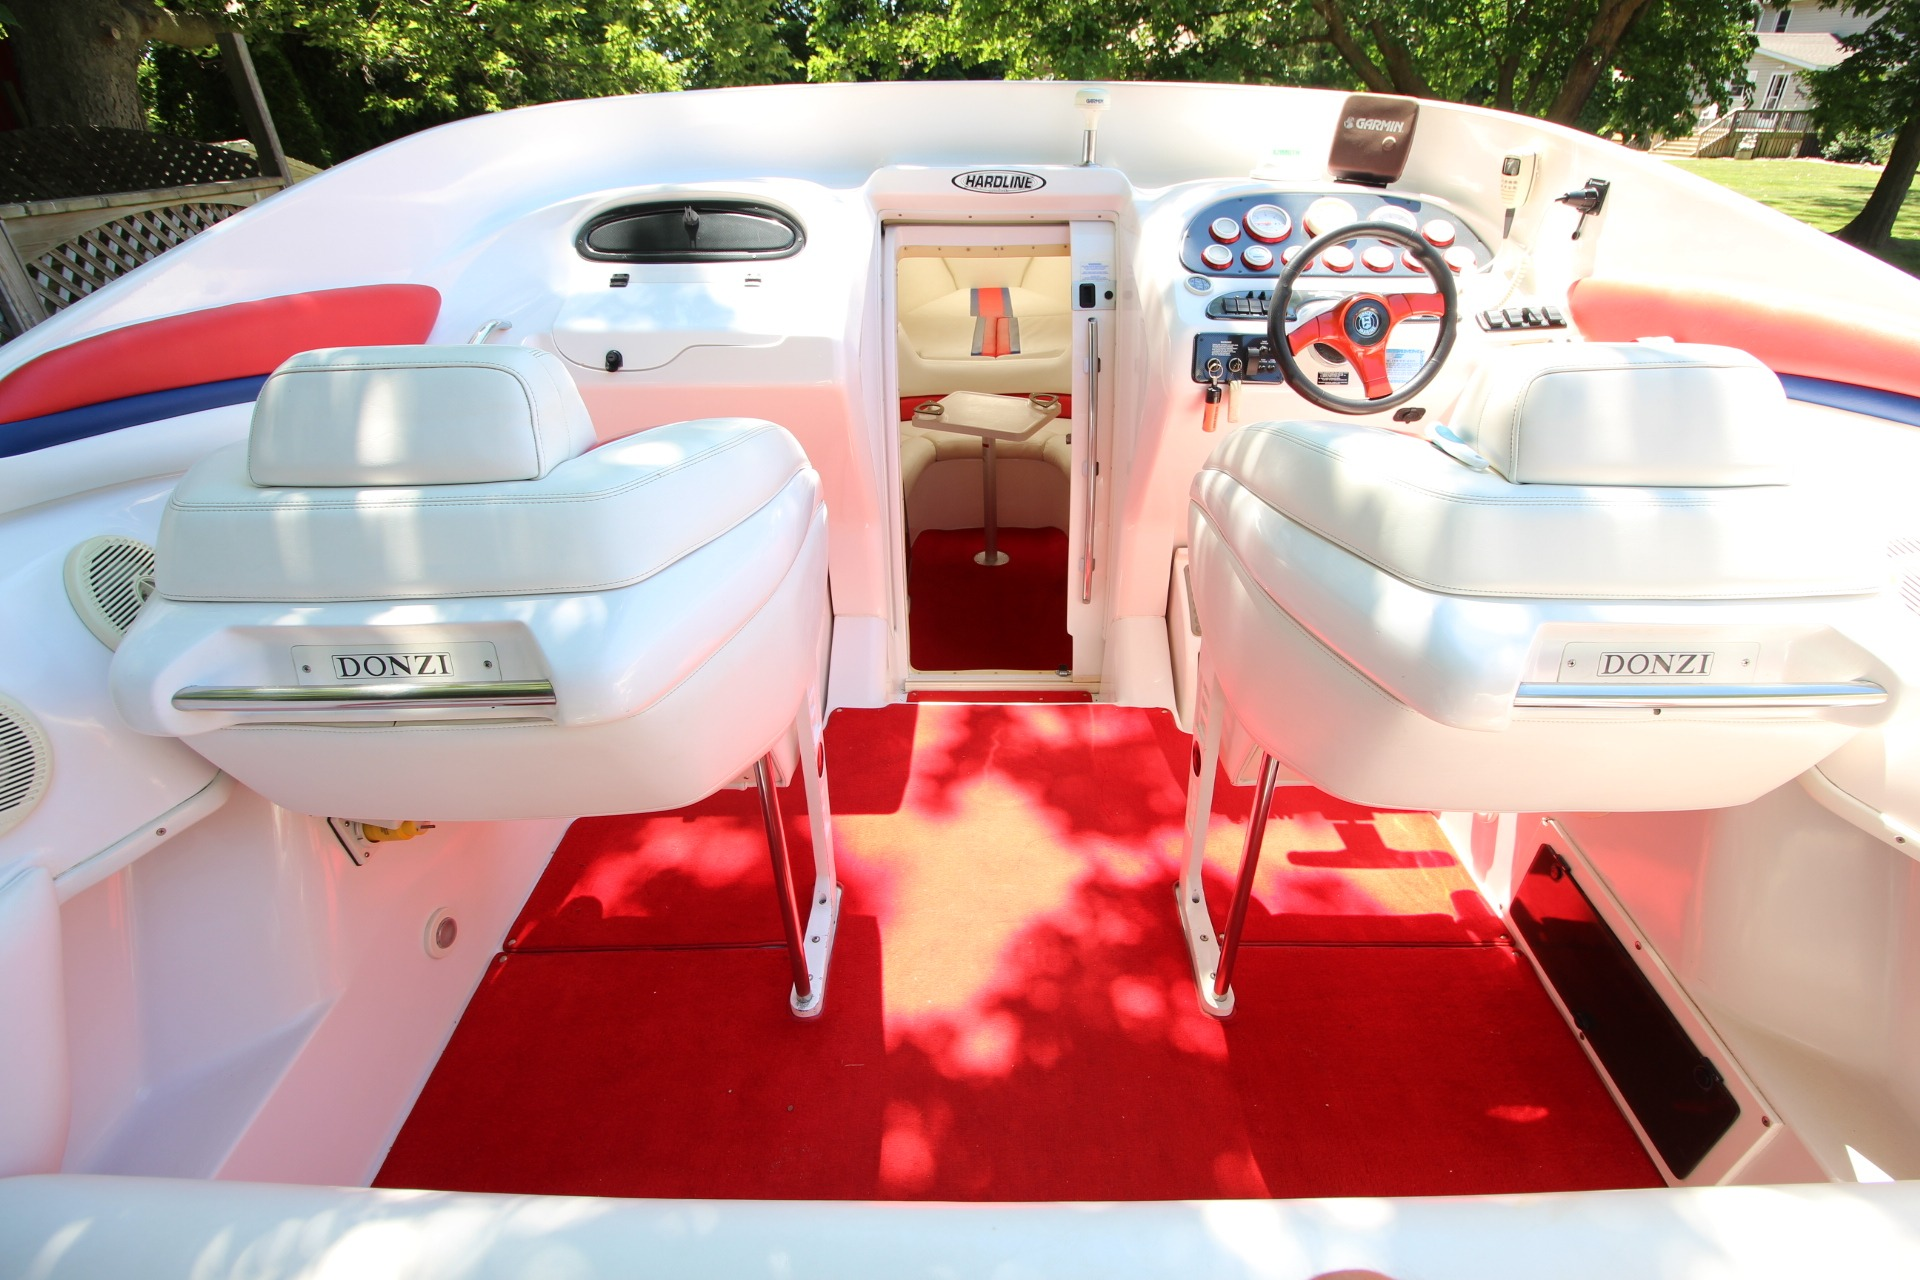 Donzi 33 Zx boats for sale - boats com